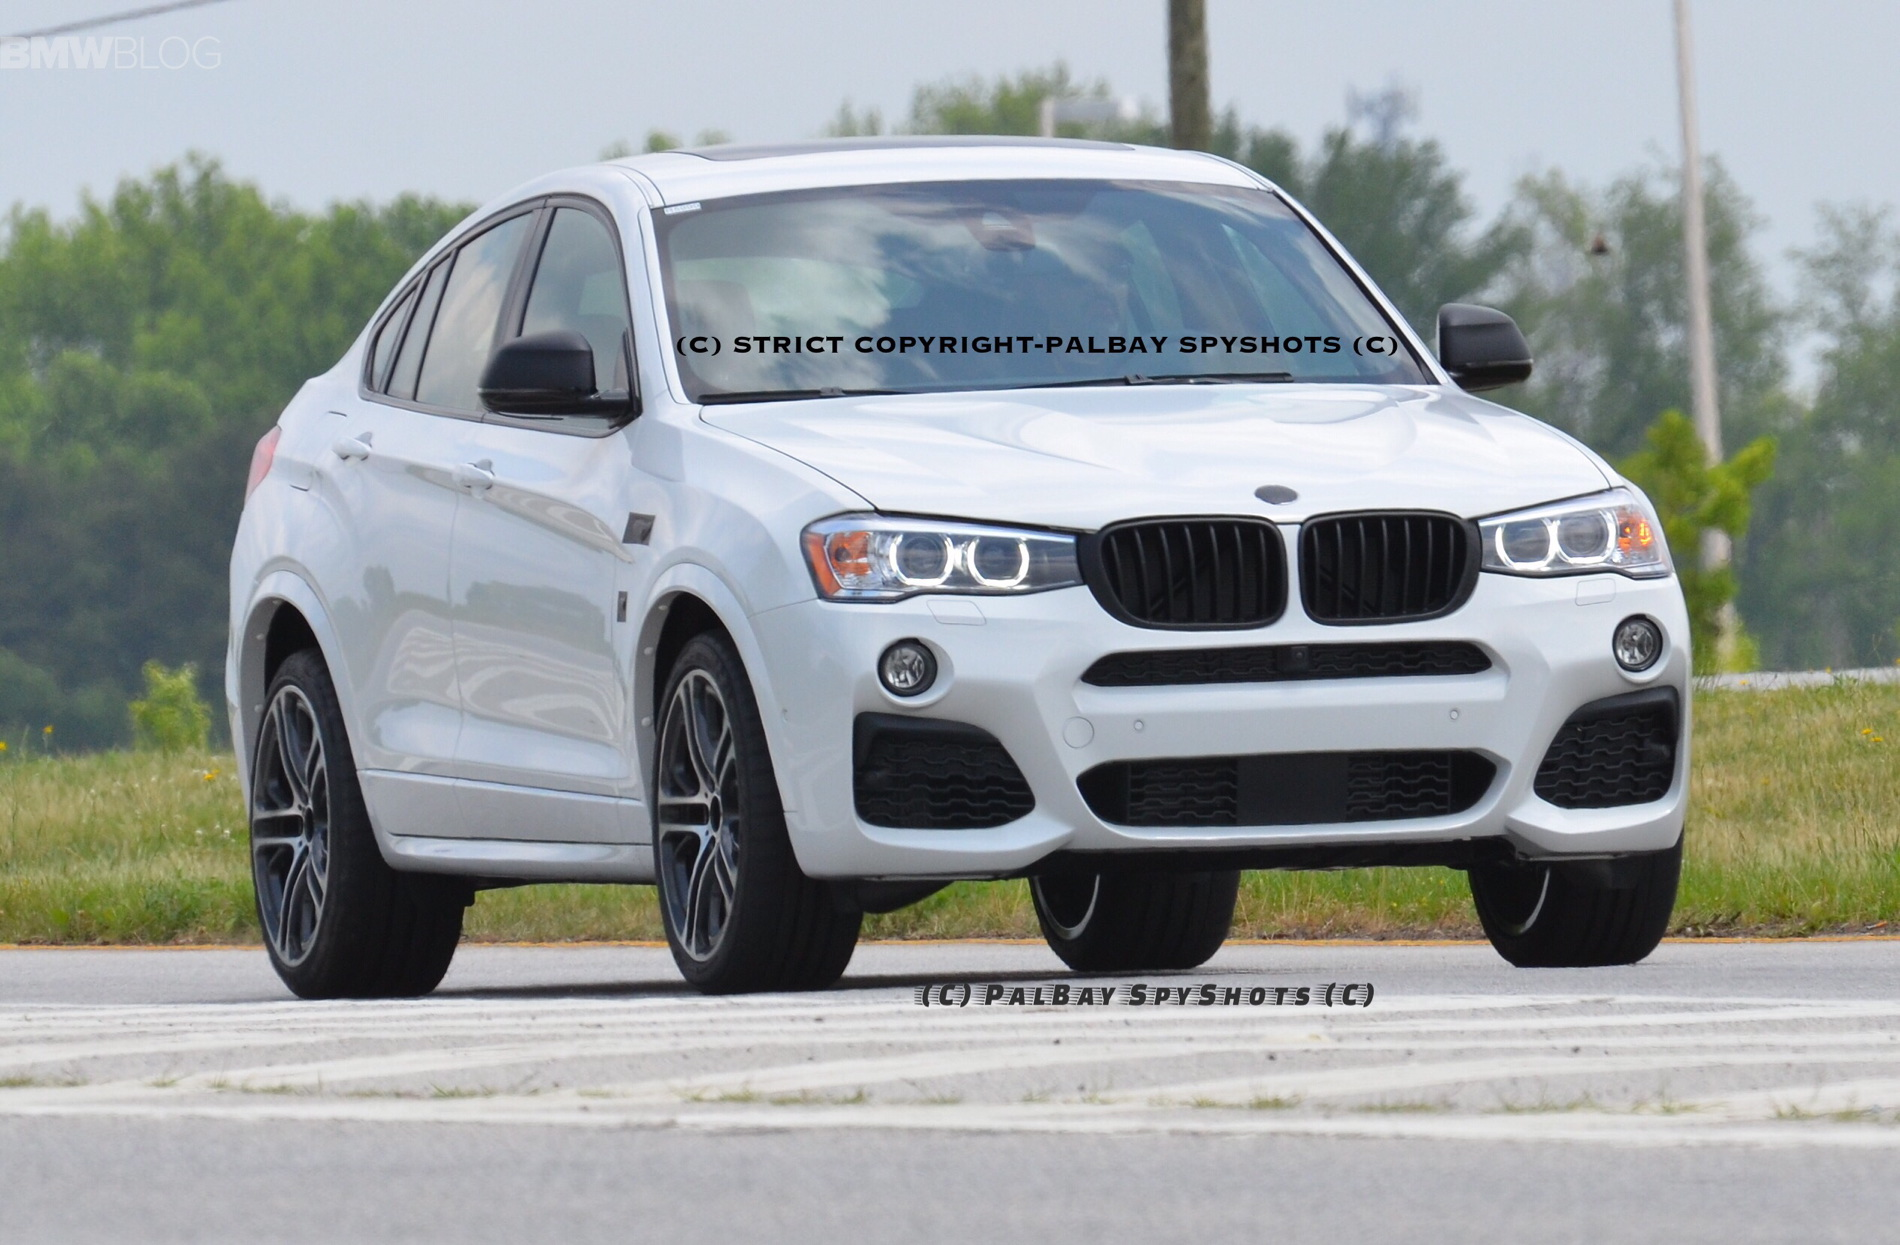 2017 BMW X4 M40i Real Life Photos 02 750x491